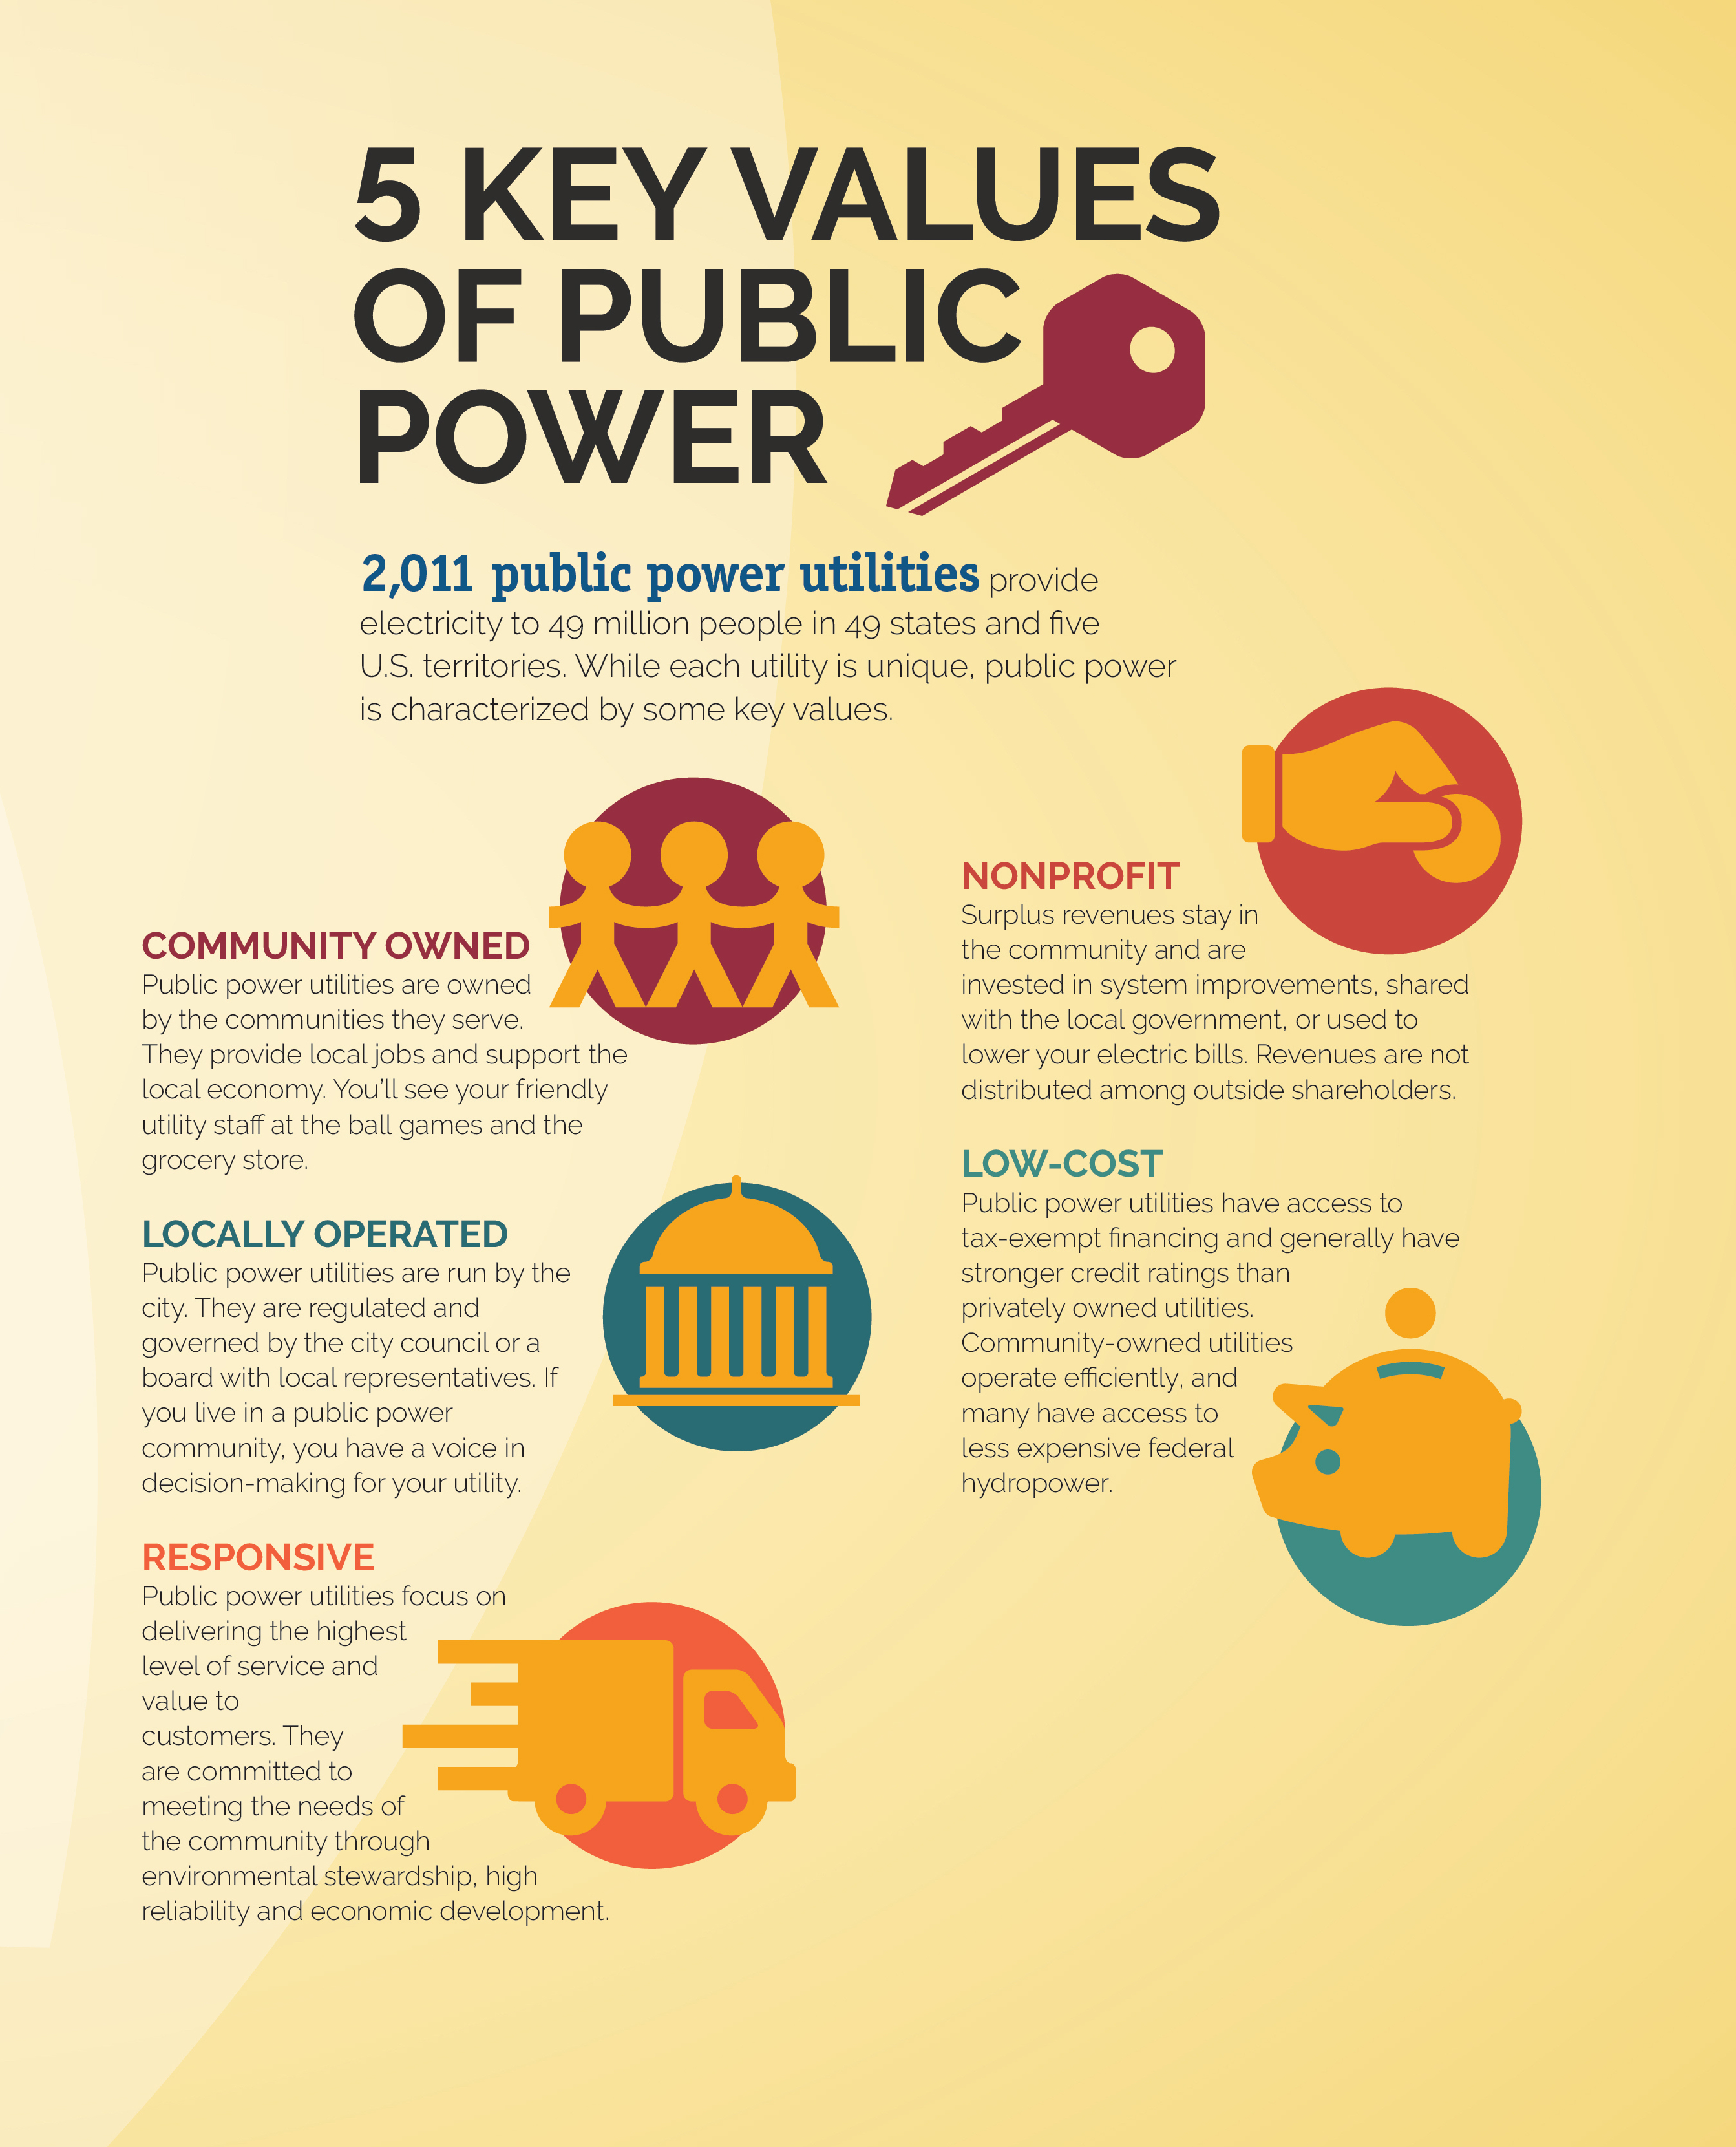 Key values of public power